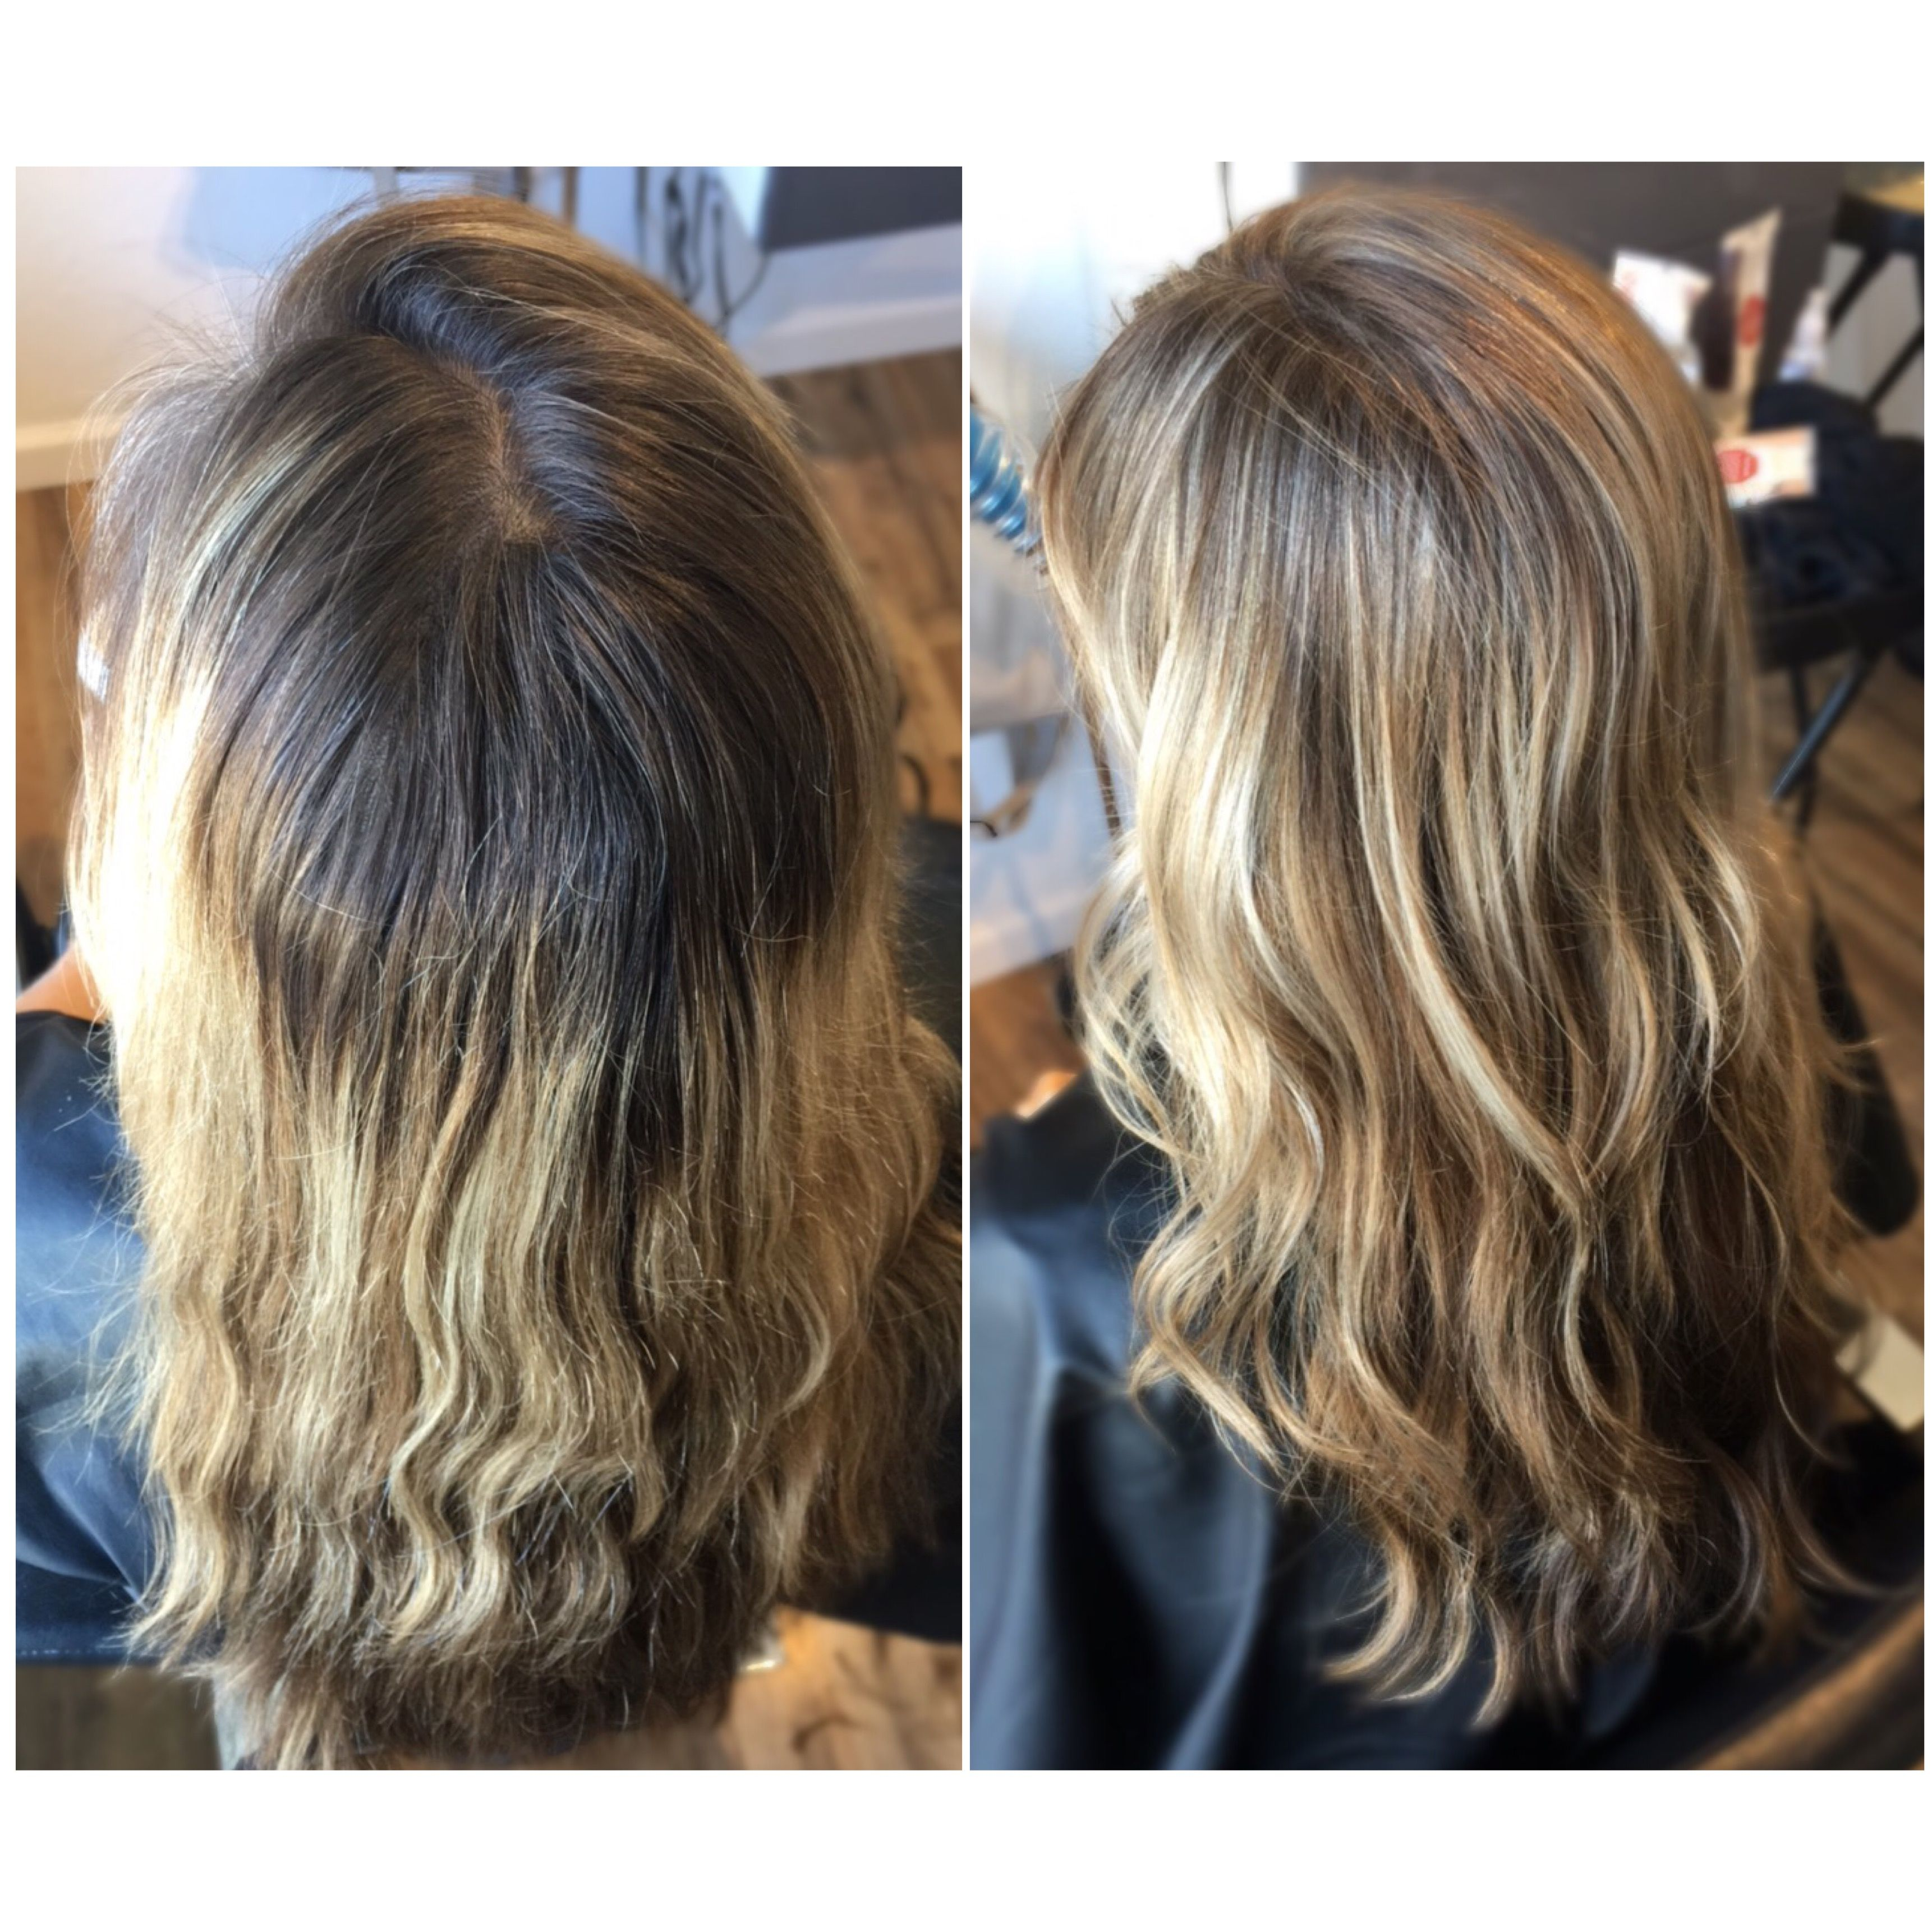 Before And After Babylights And Highlights Short Hair Balayage Hair Color Dark Blonde Hair Images